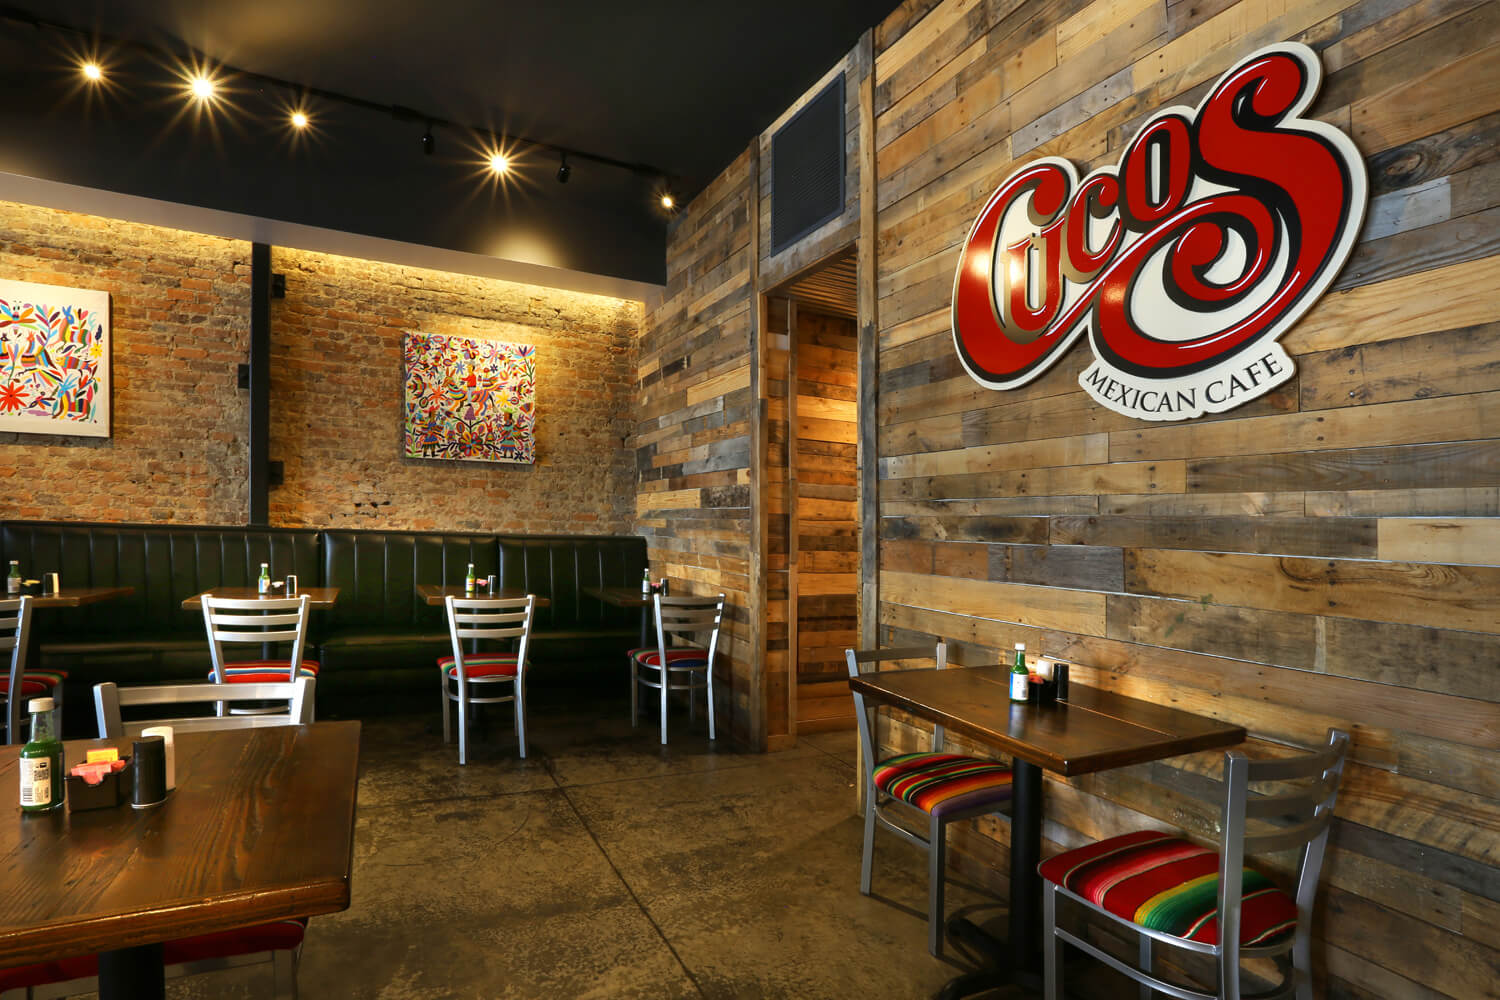 Cuco's Mexican Café Restaurant Designed by Foshee Architecture – Interior Sign on Pallet Wood Wall